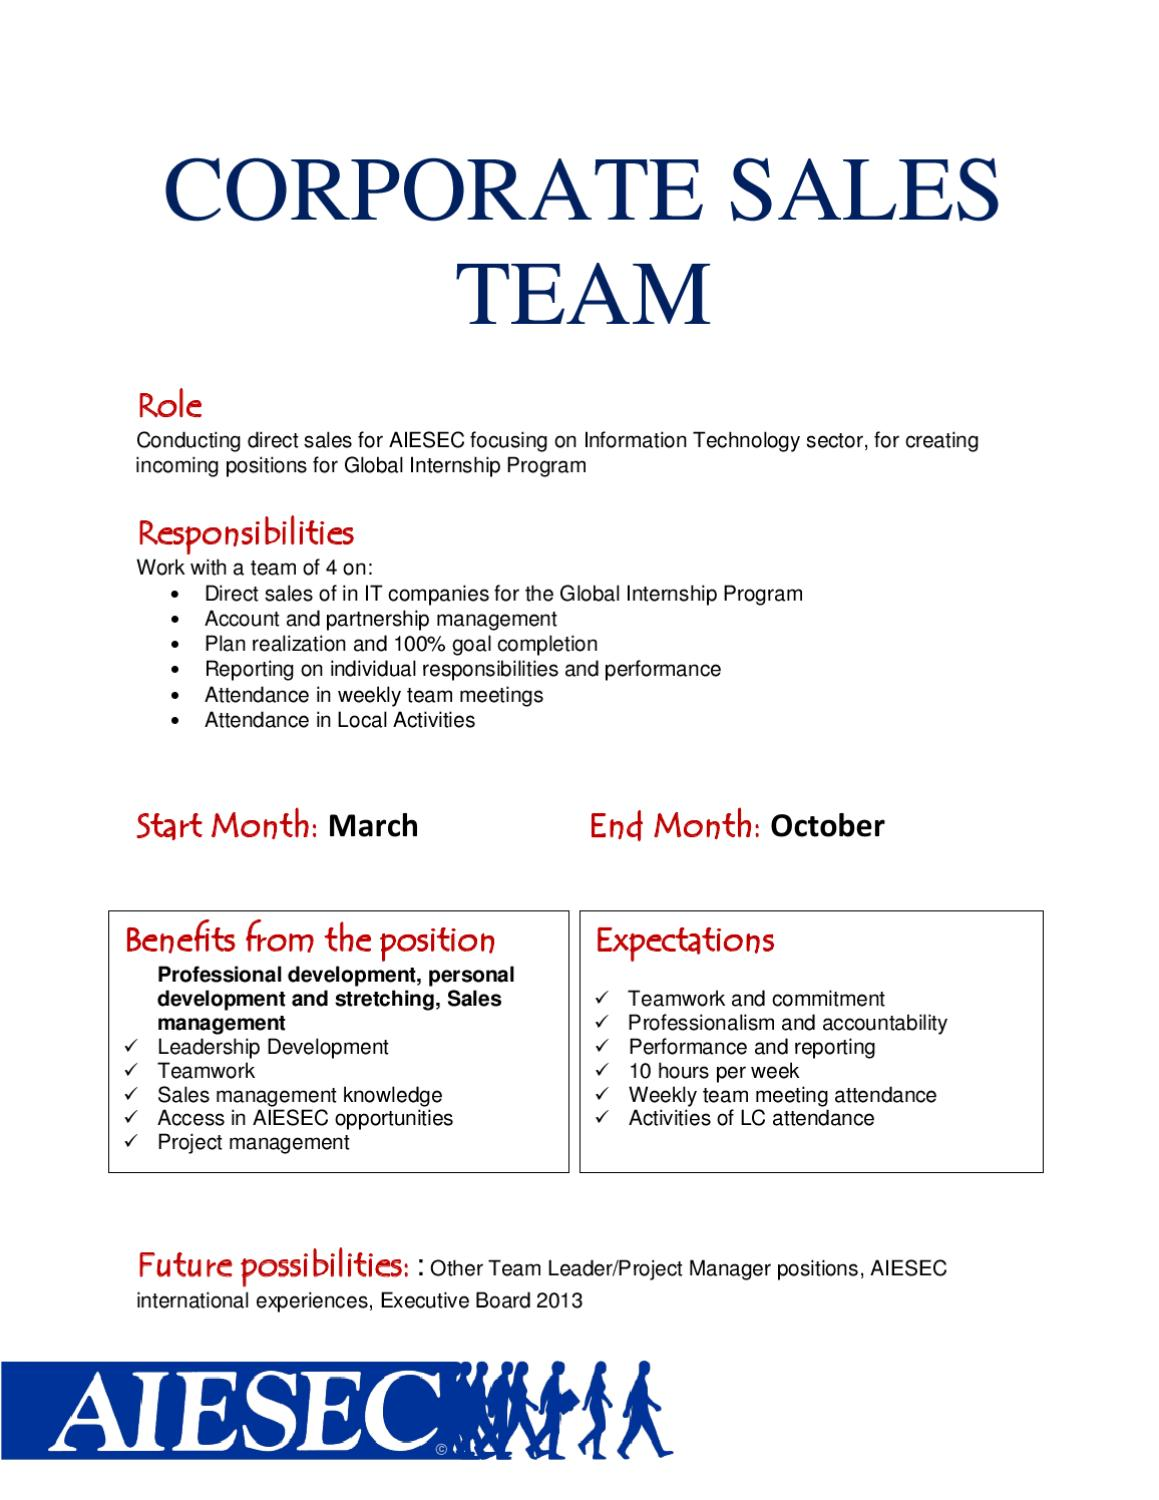 aiesec athens - it sales team booklet by aiesec athens